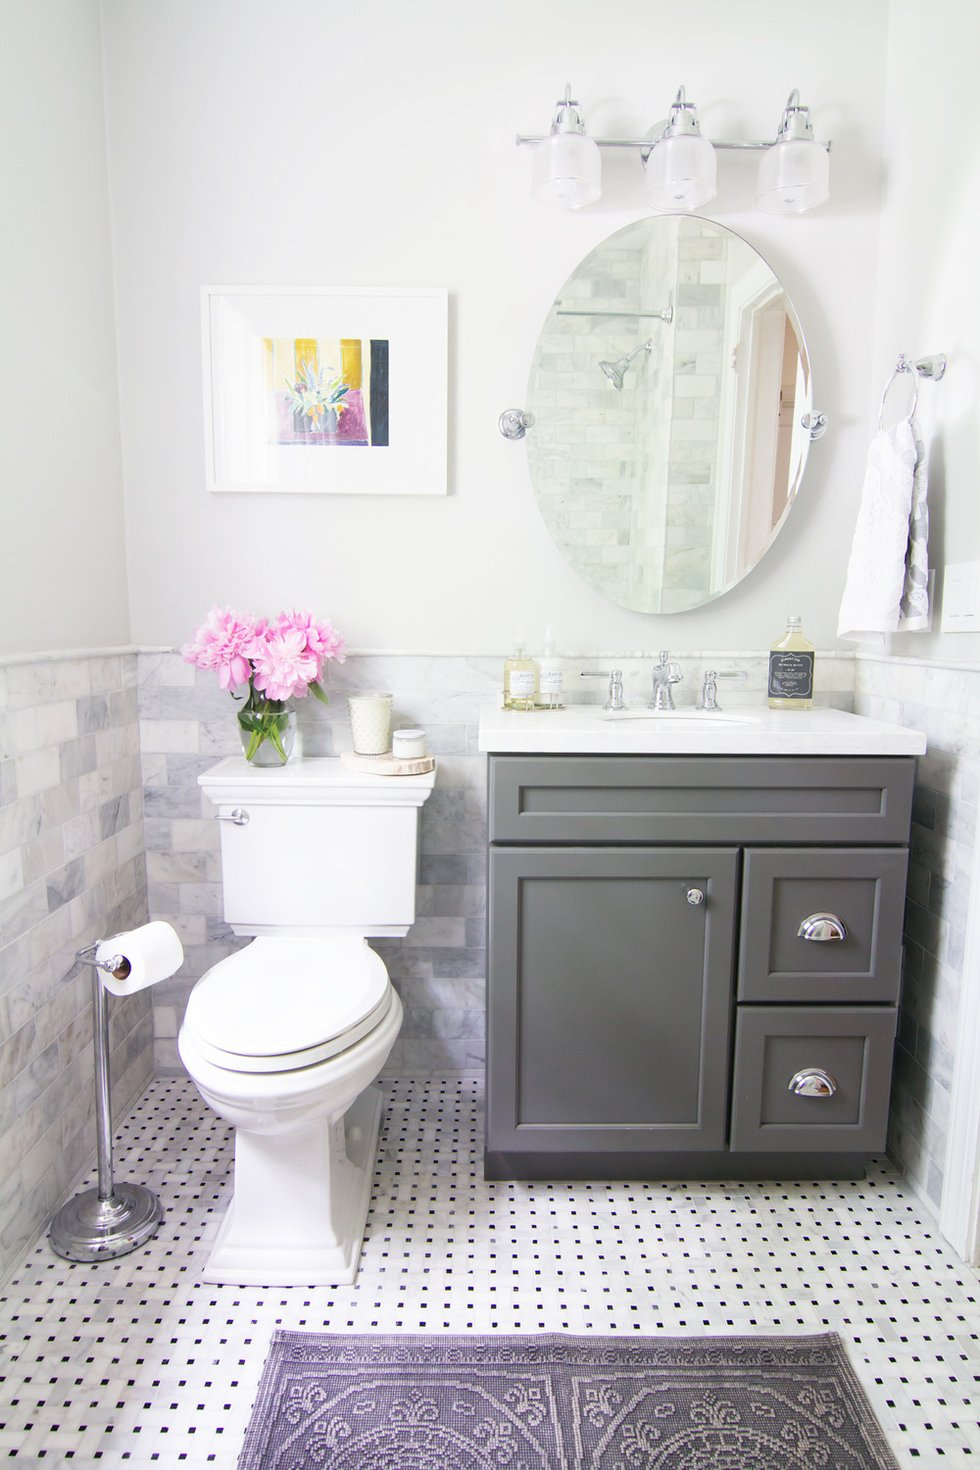 Modern and simple small bathroom ideas you can try at home for Images of small bathrooms